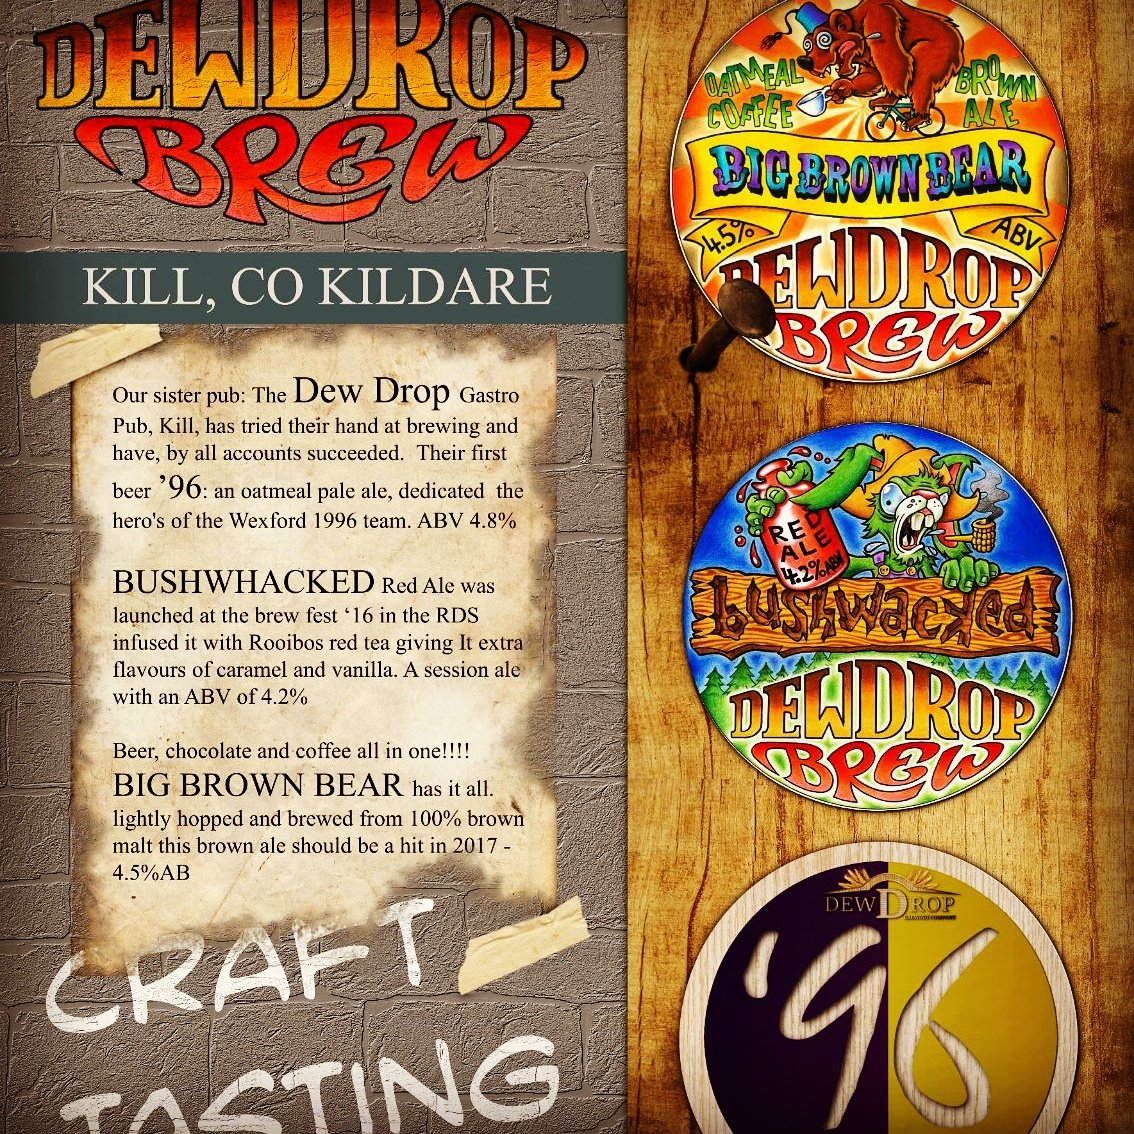 Great beer will be pouring all over @curraghrace @DDFRacing this #derbywknd   #local #craftbeer #streetfood @BeoirFinder @Lock13Sallins<br>http://pic.twitter.com/HdMUOIeqXp